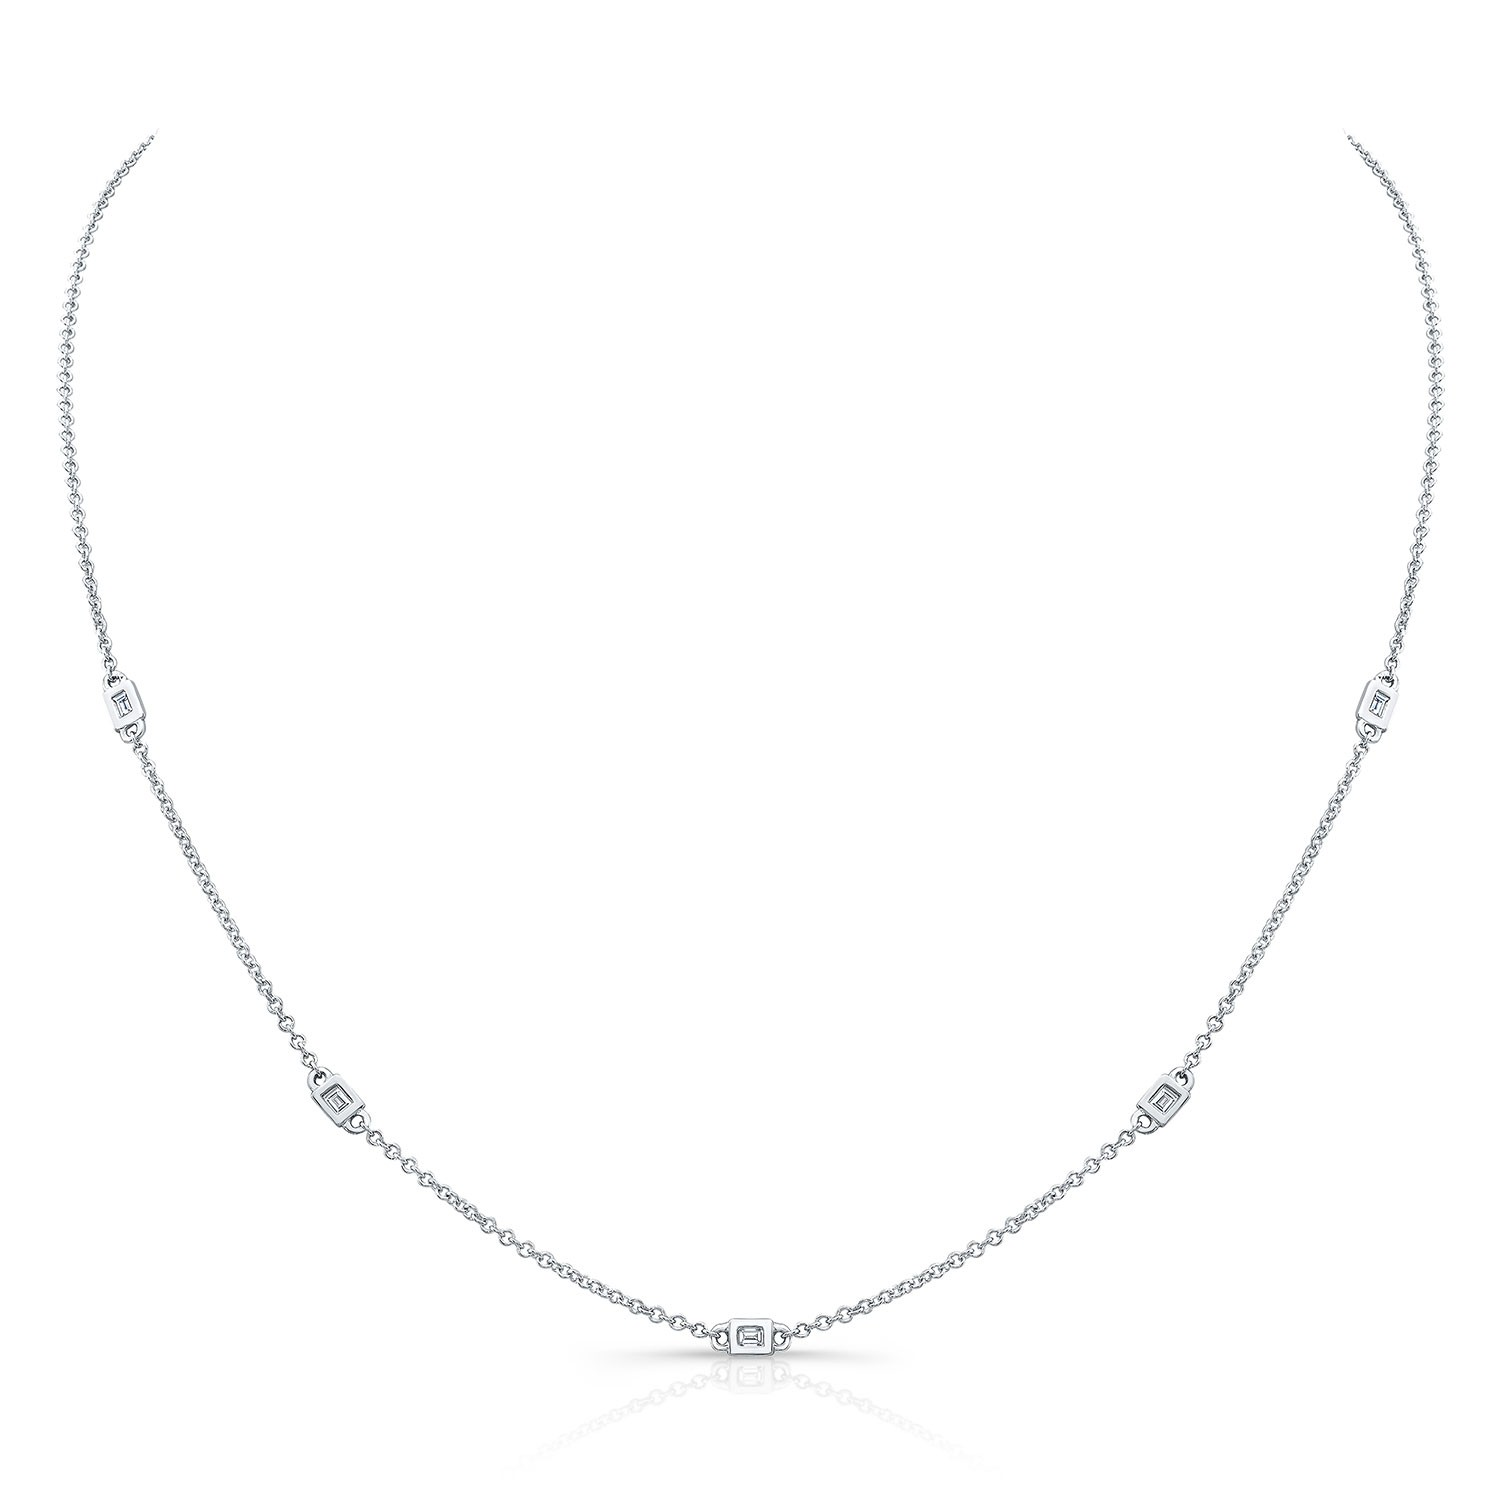 14k White Gold 5 Bezel Baguette Diamond Station Necklace